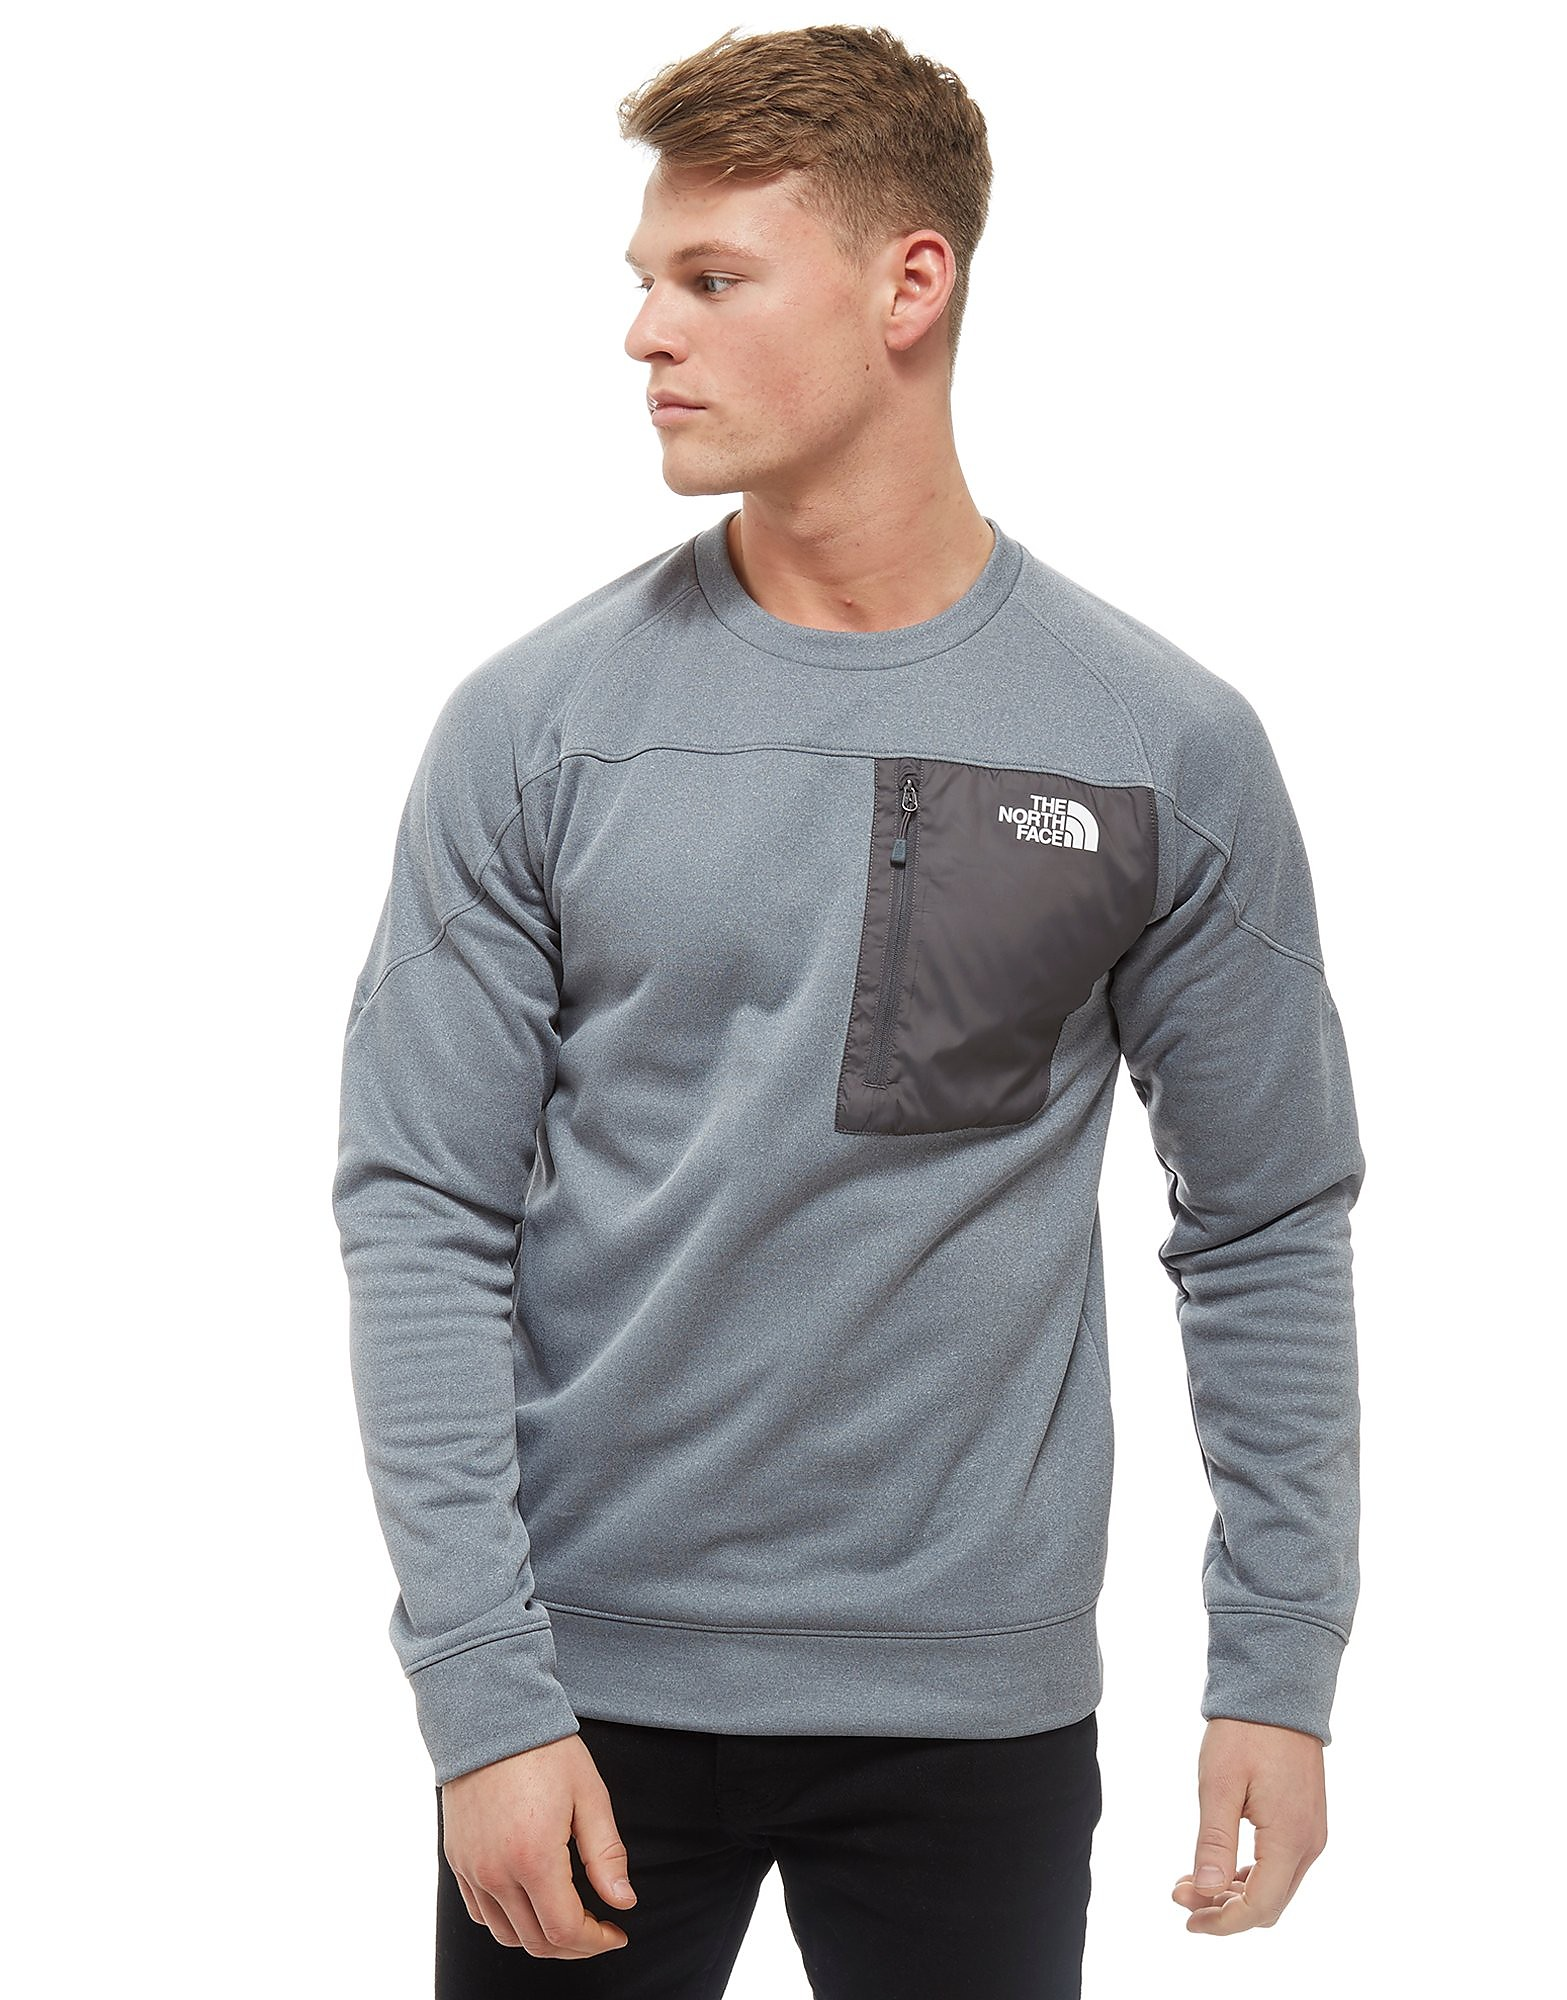 The North Face Mittelegi Crew Sweatshirt